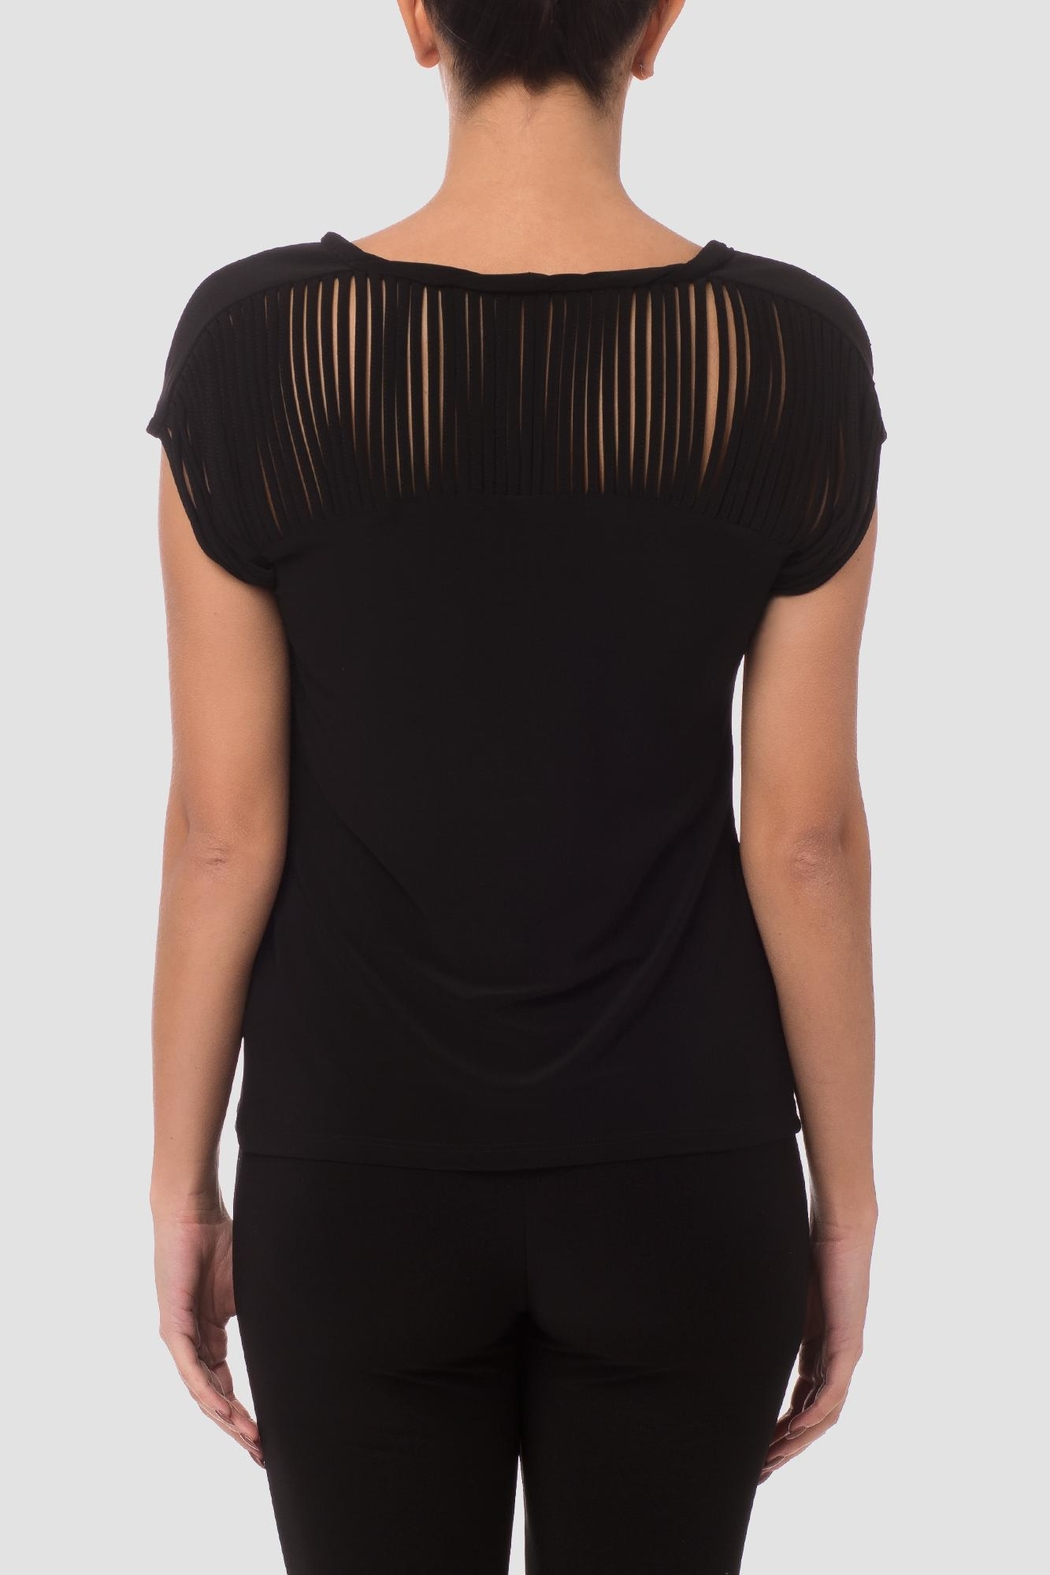 Joseph Ribkoff Slitted Sleeve Top - Front Full Image